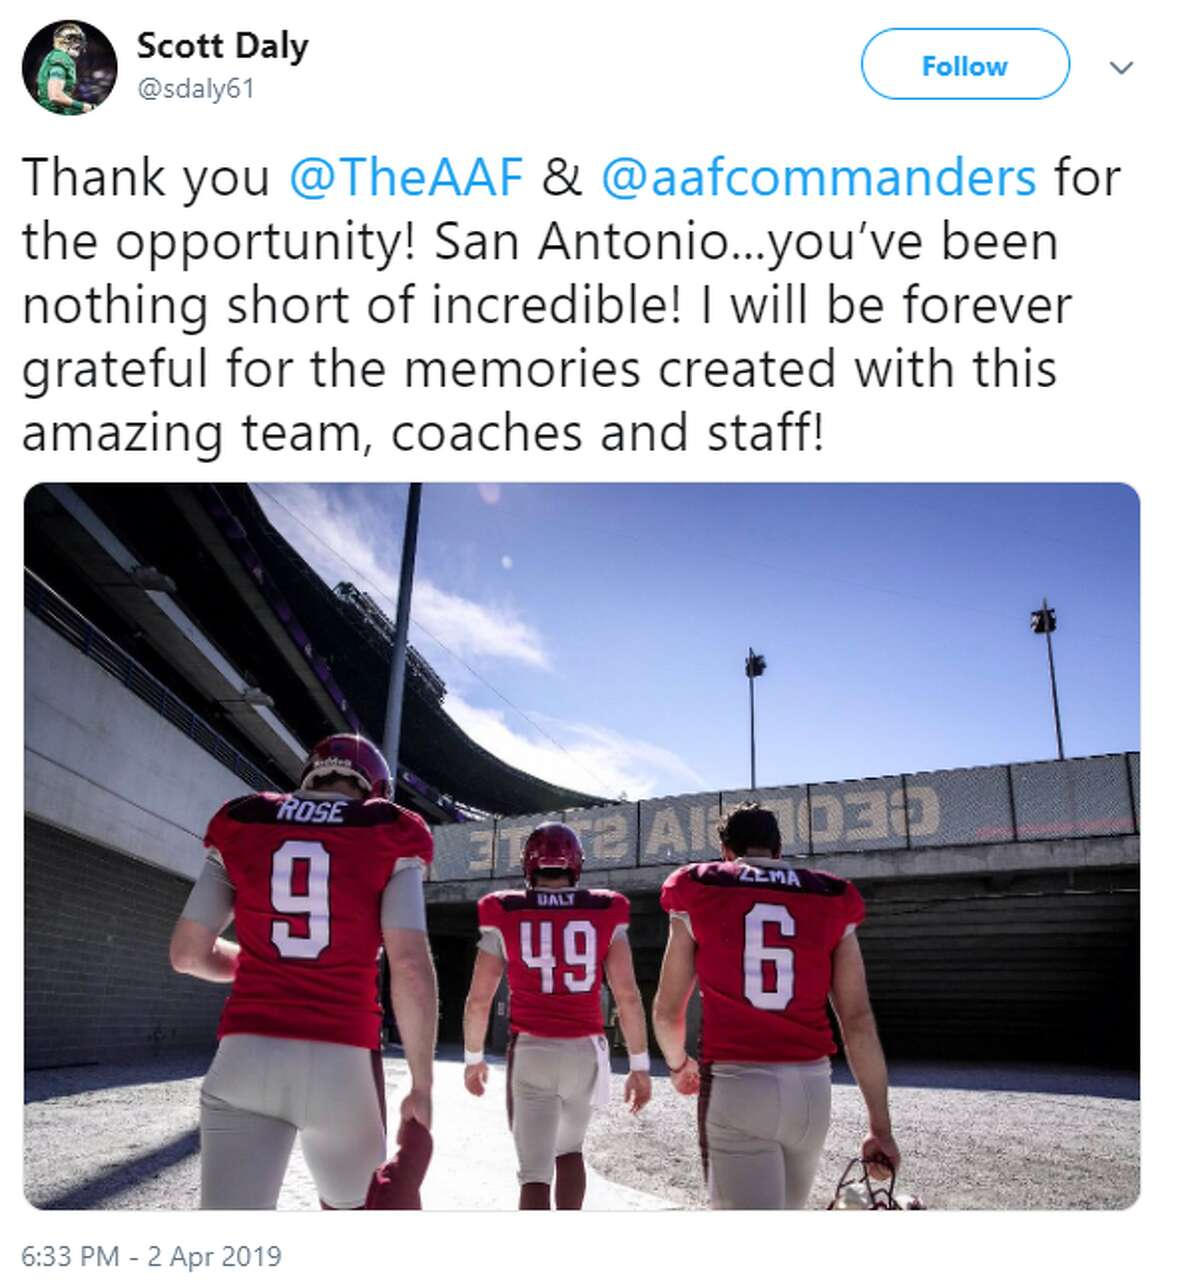 @sdaly61: Thank you @TheAAF & @aafcommanders for the opportunity! San Antonio...you've been nothing short of incredible! I will be forever grateful for the memories created with this amazing team, coaches and staff!